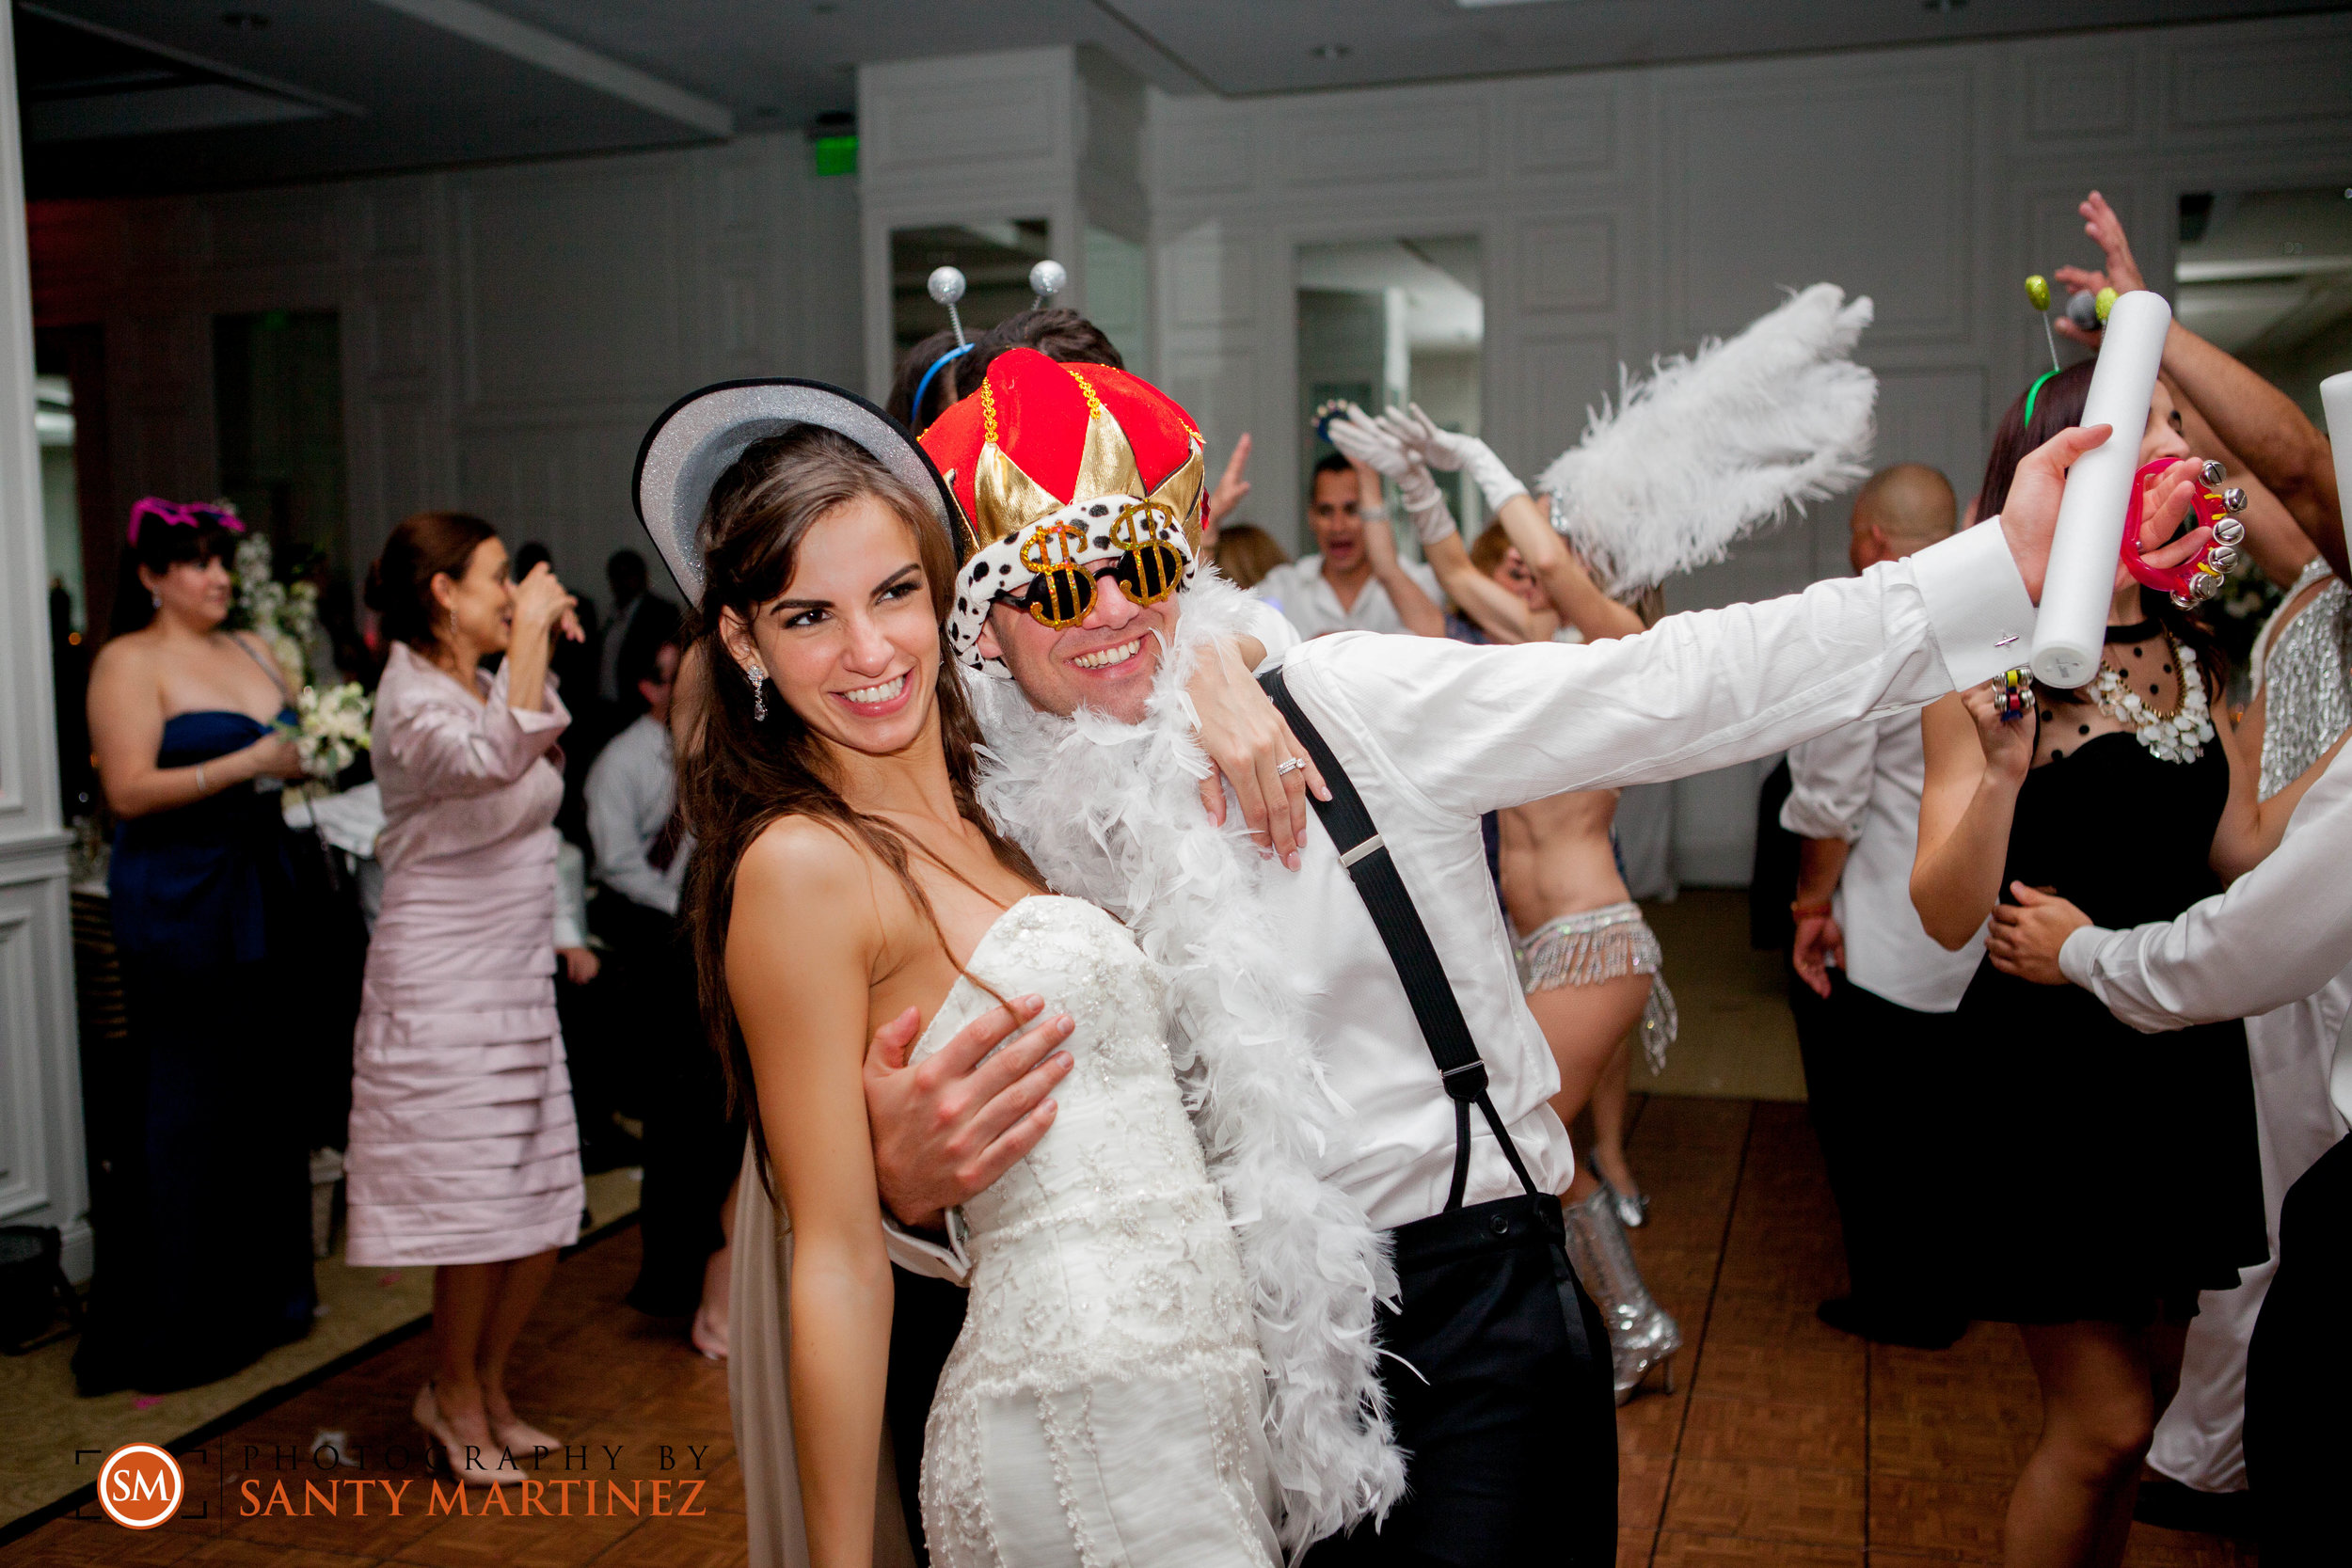 Miami Wedding Photographer - Santy Martinez -42.jpg